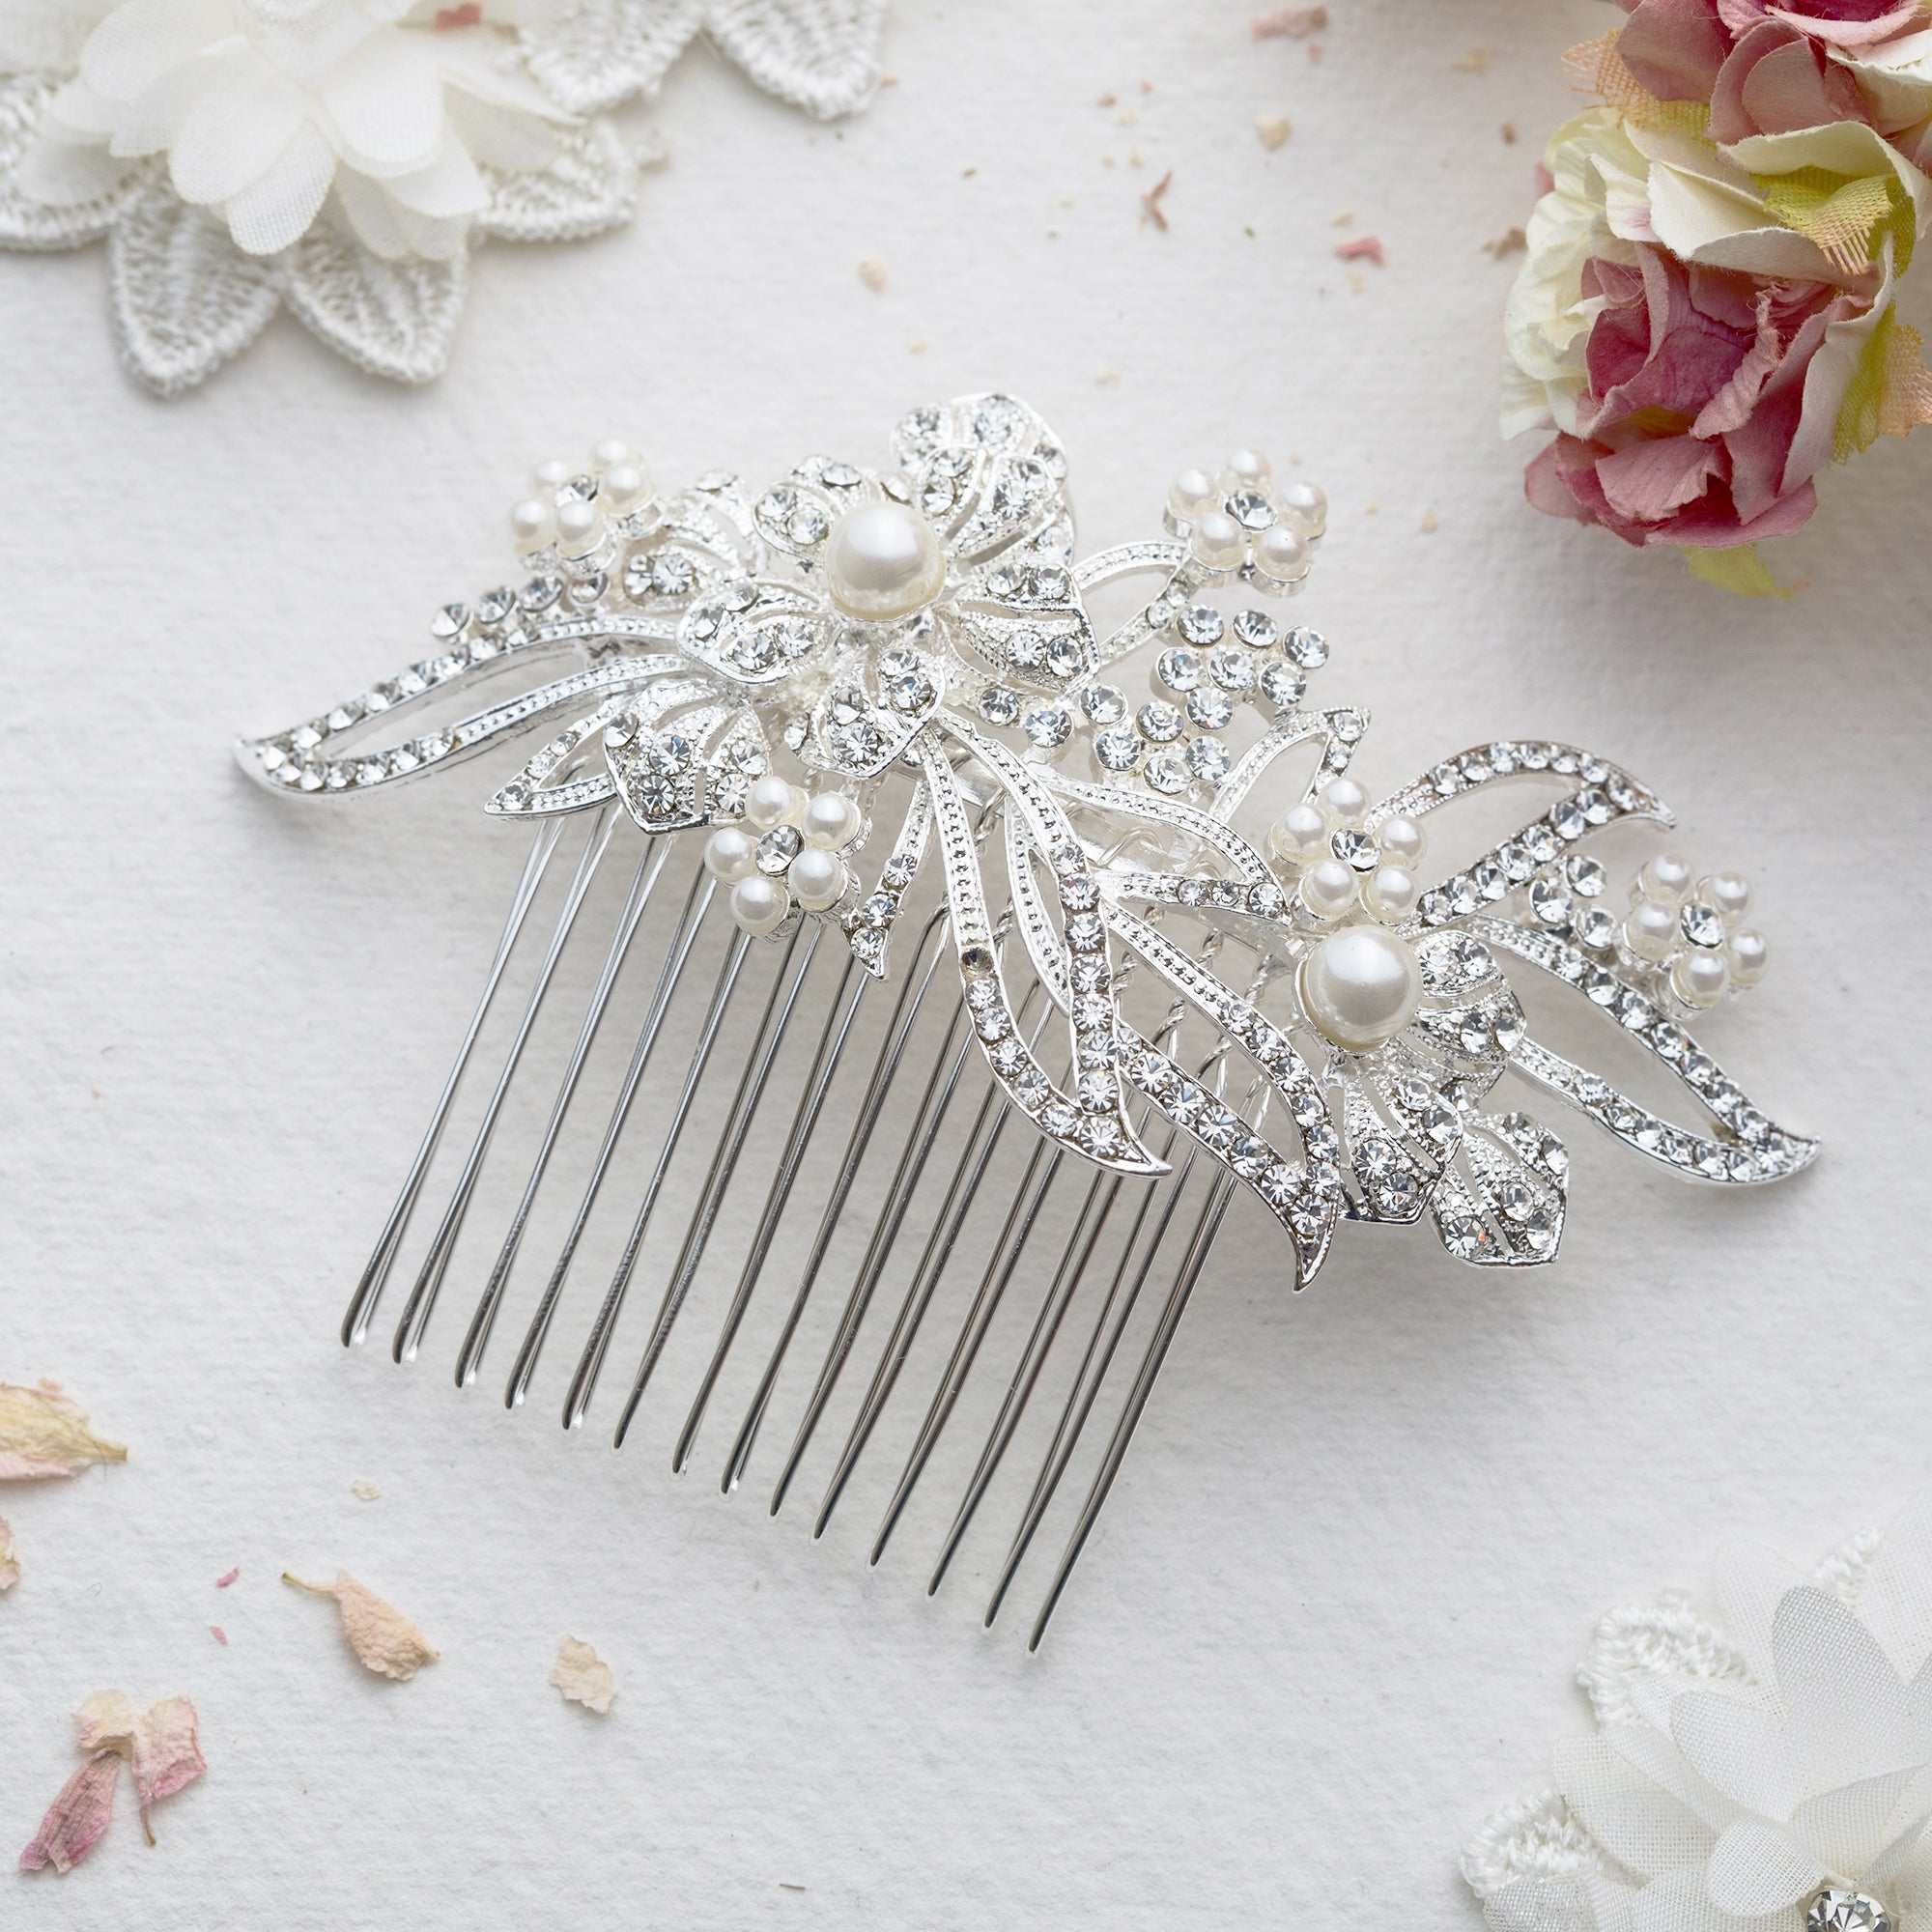 Lily crystal hair comb